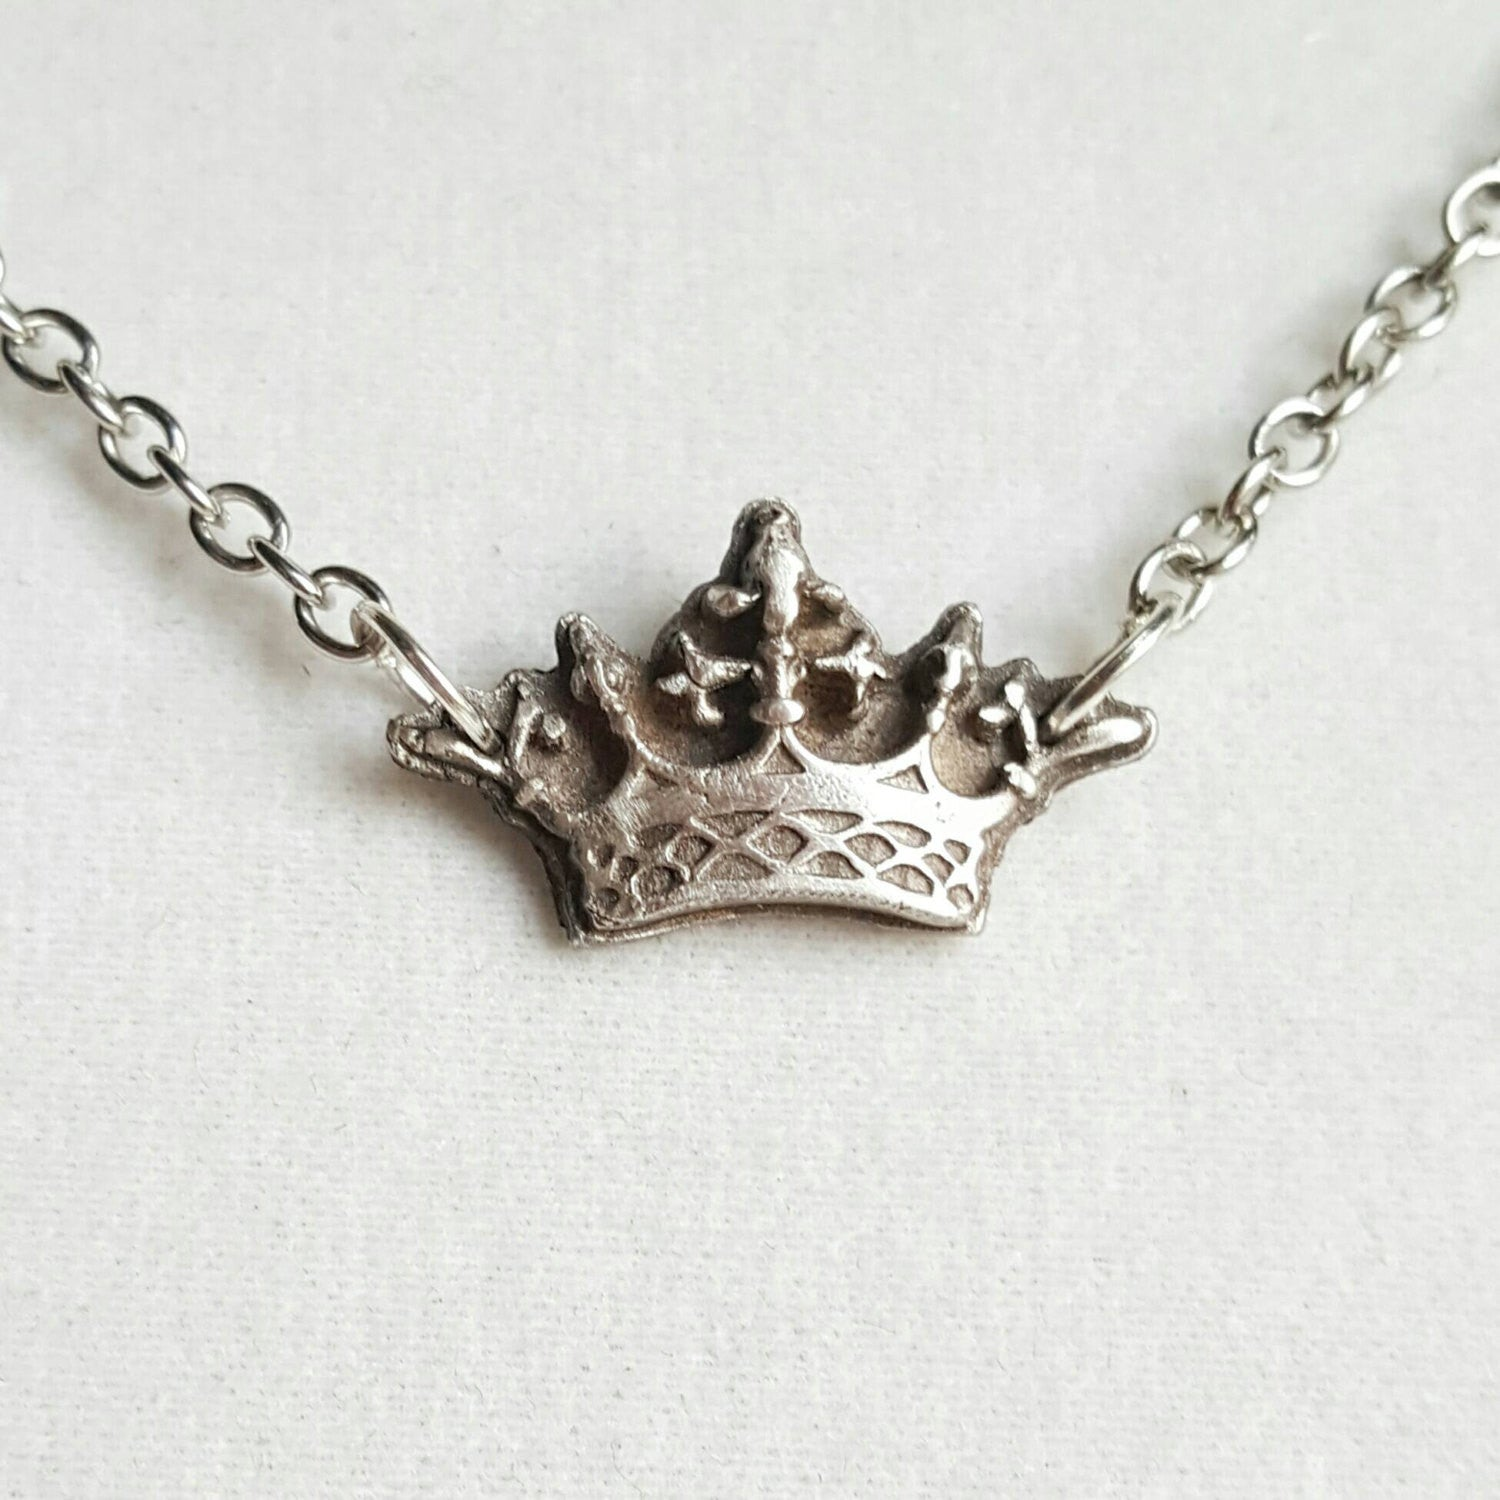 Crown Necklace 925 Sterling Silver Jewelry - DRAVYNMOOR